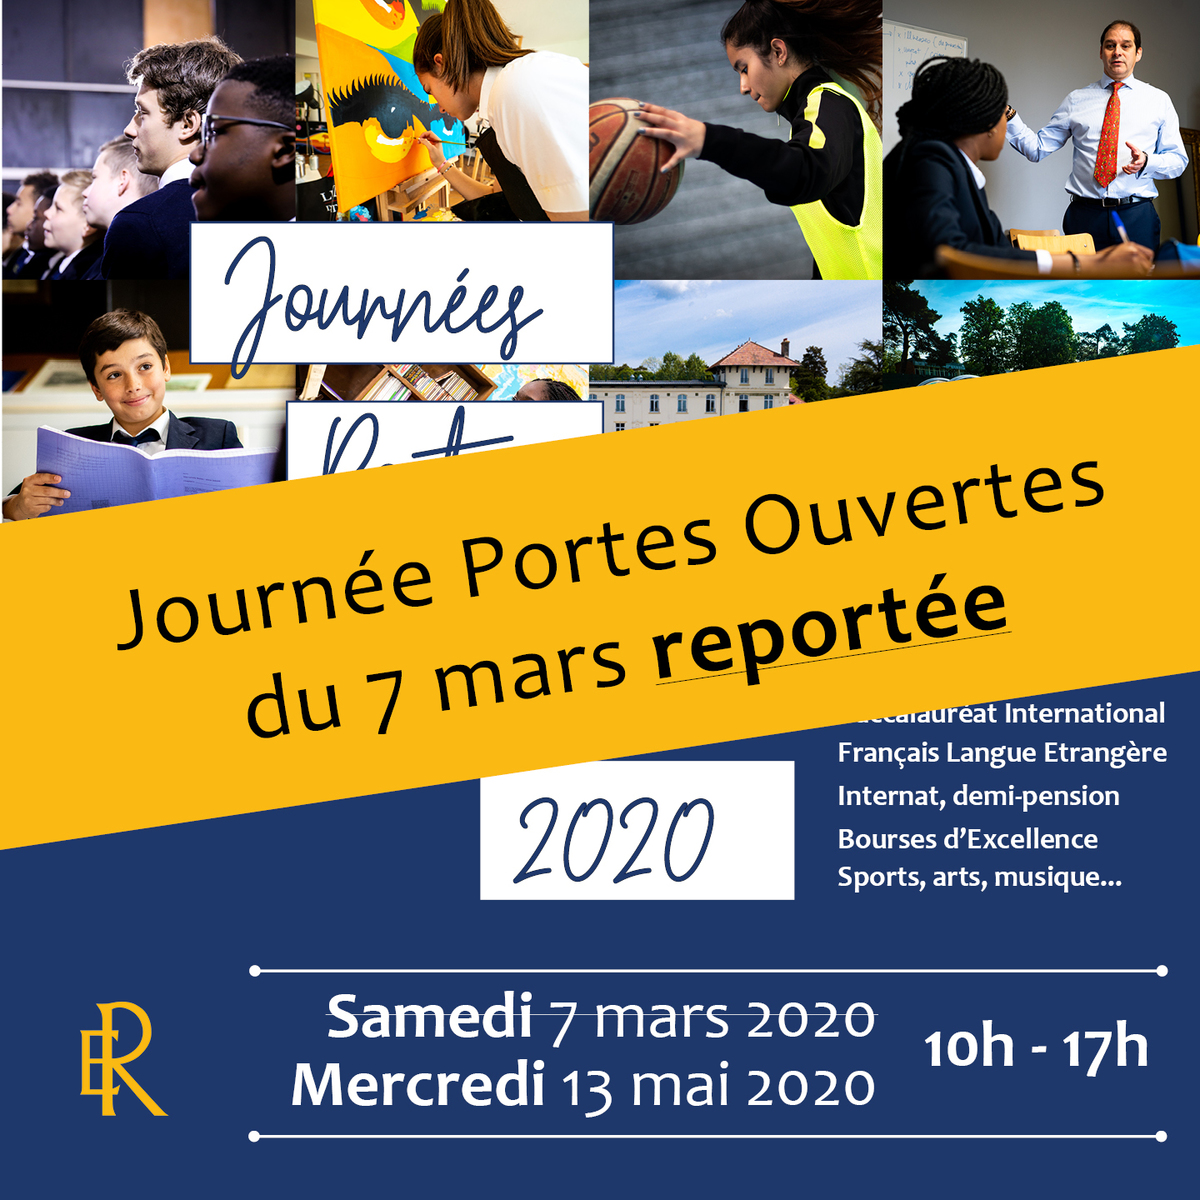 Report Journée Portes Ouvertes du 7 mars / Open Day adjournment March 7th